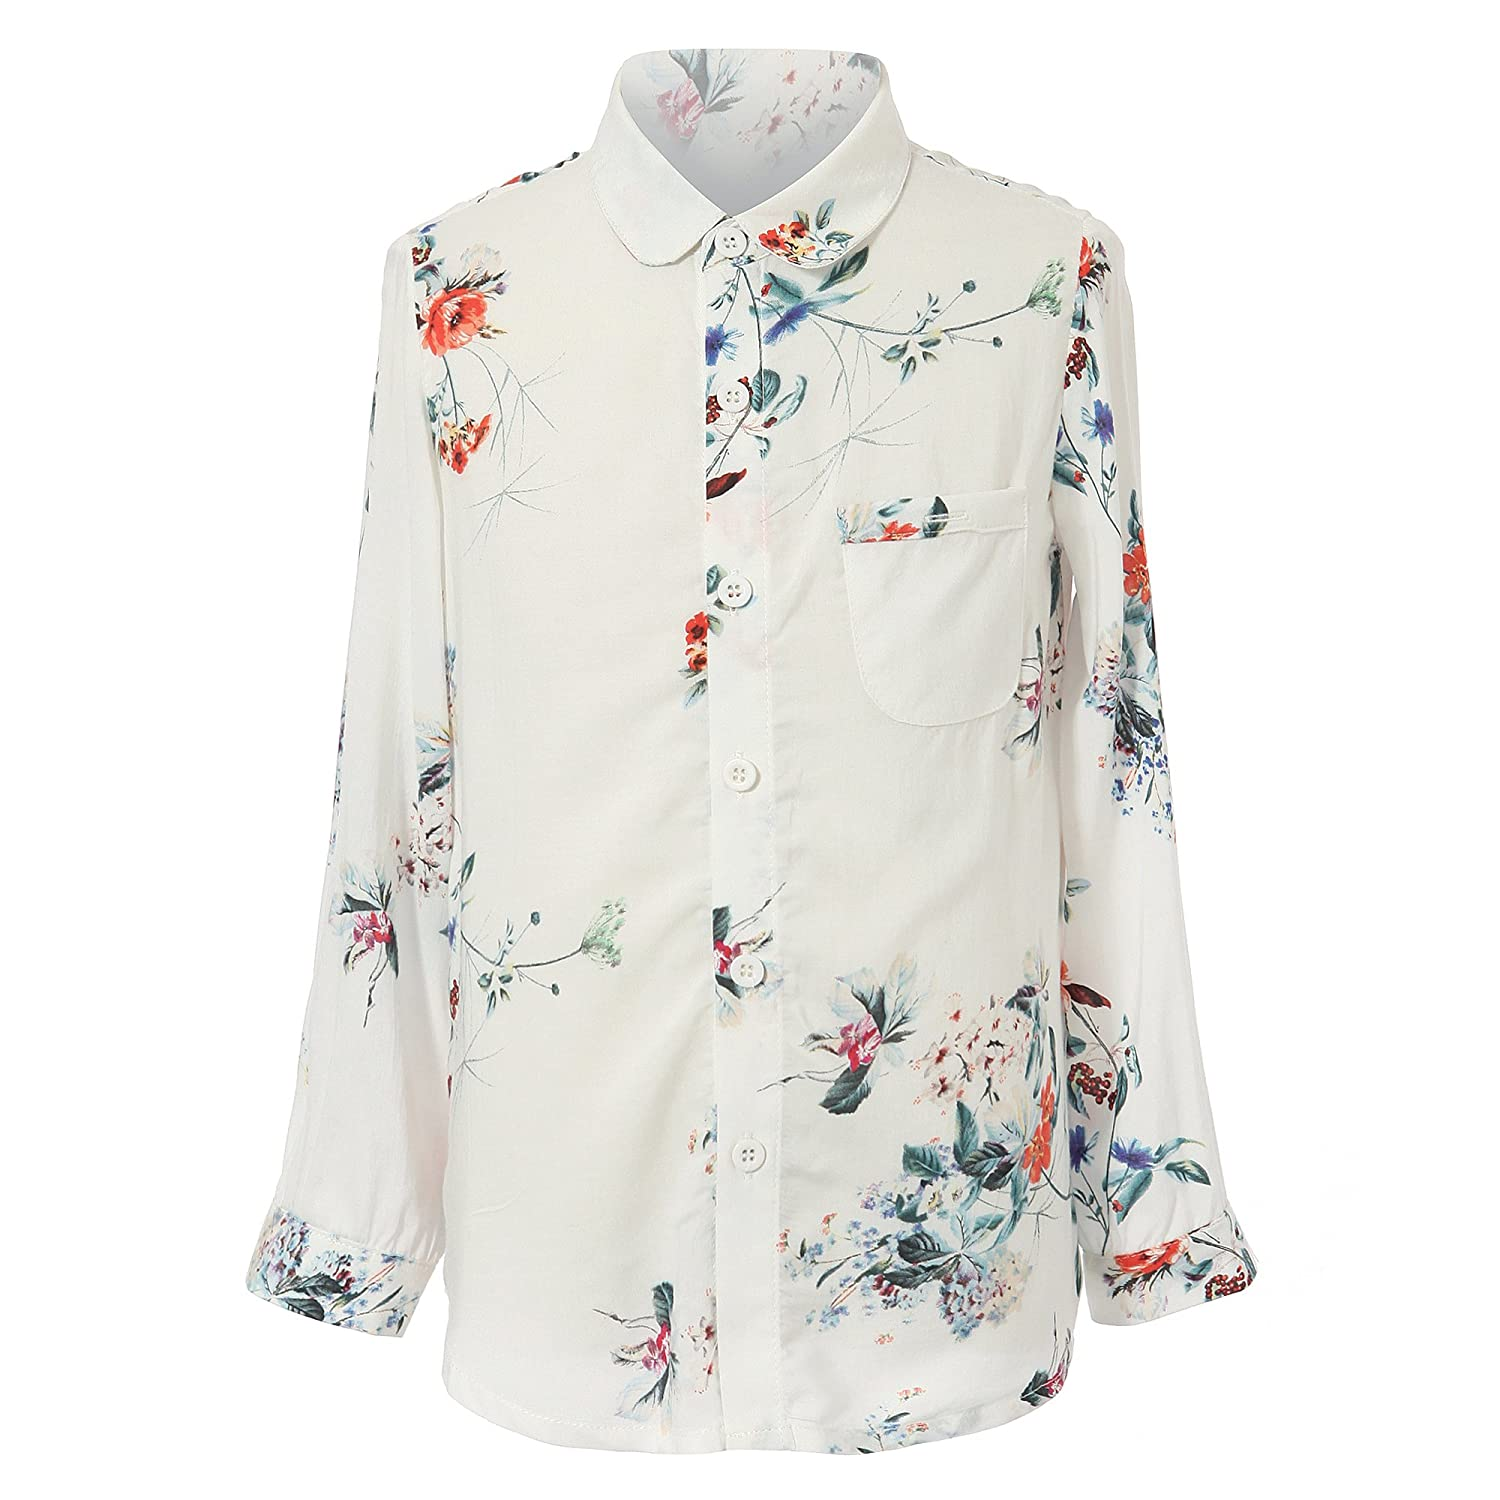 Richie House Girls Print Blouse with Lapel Collar Size 2-12 RH1890